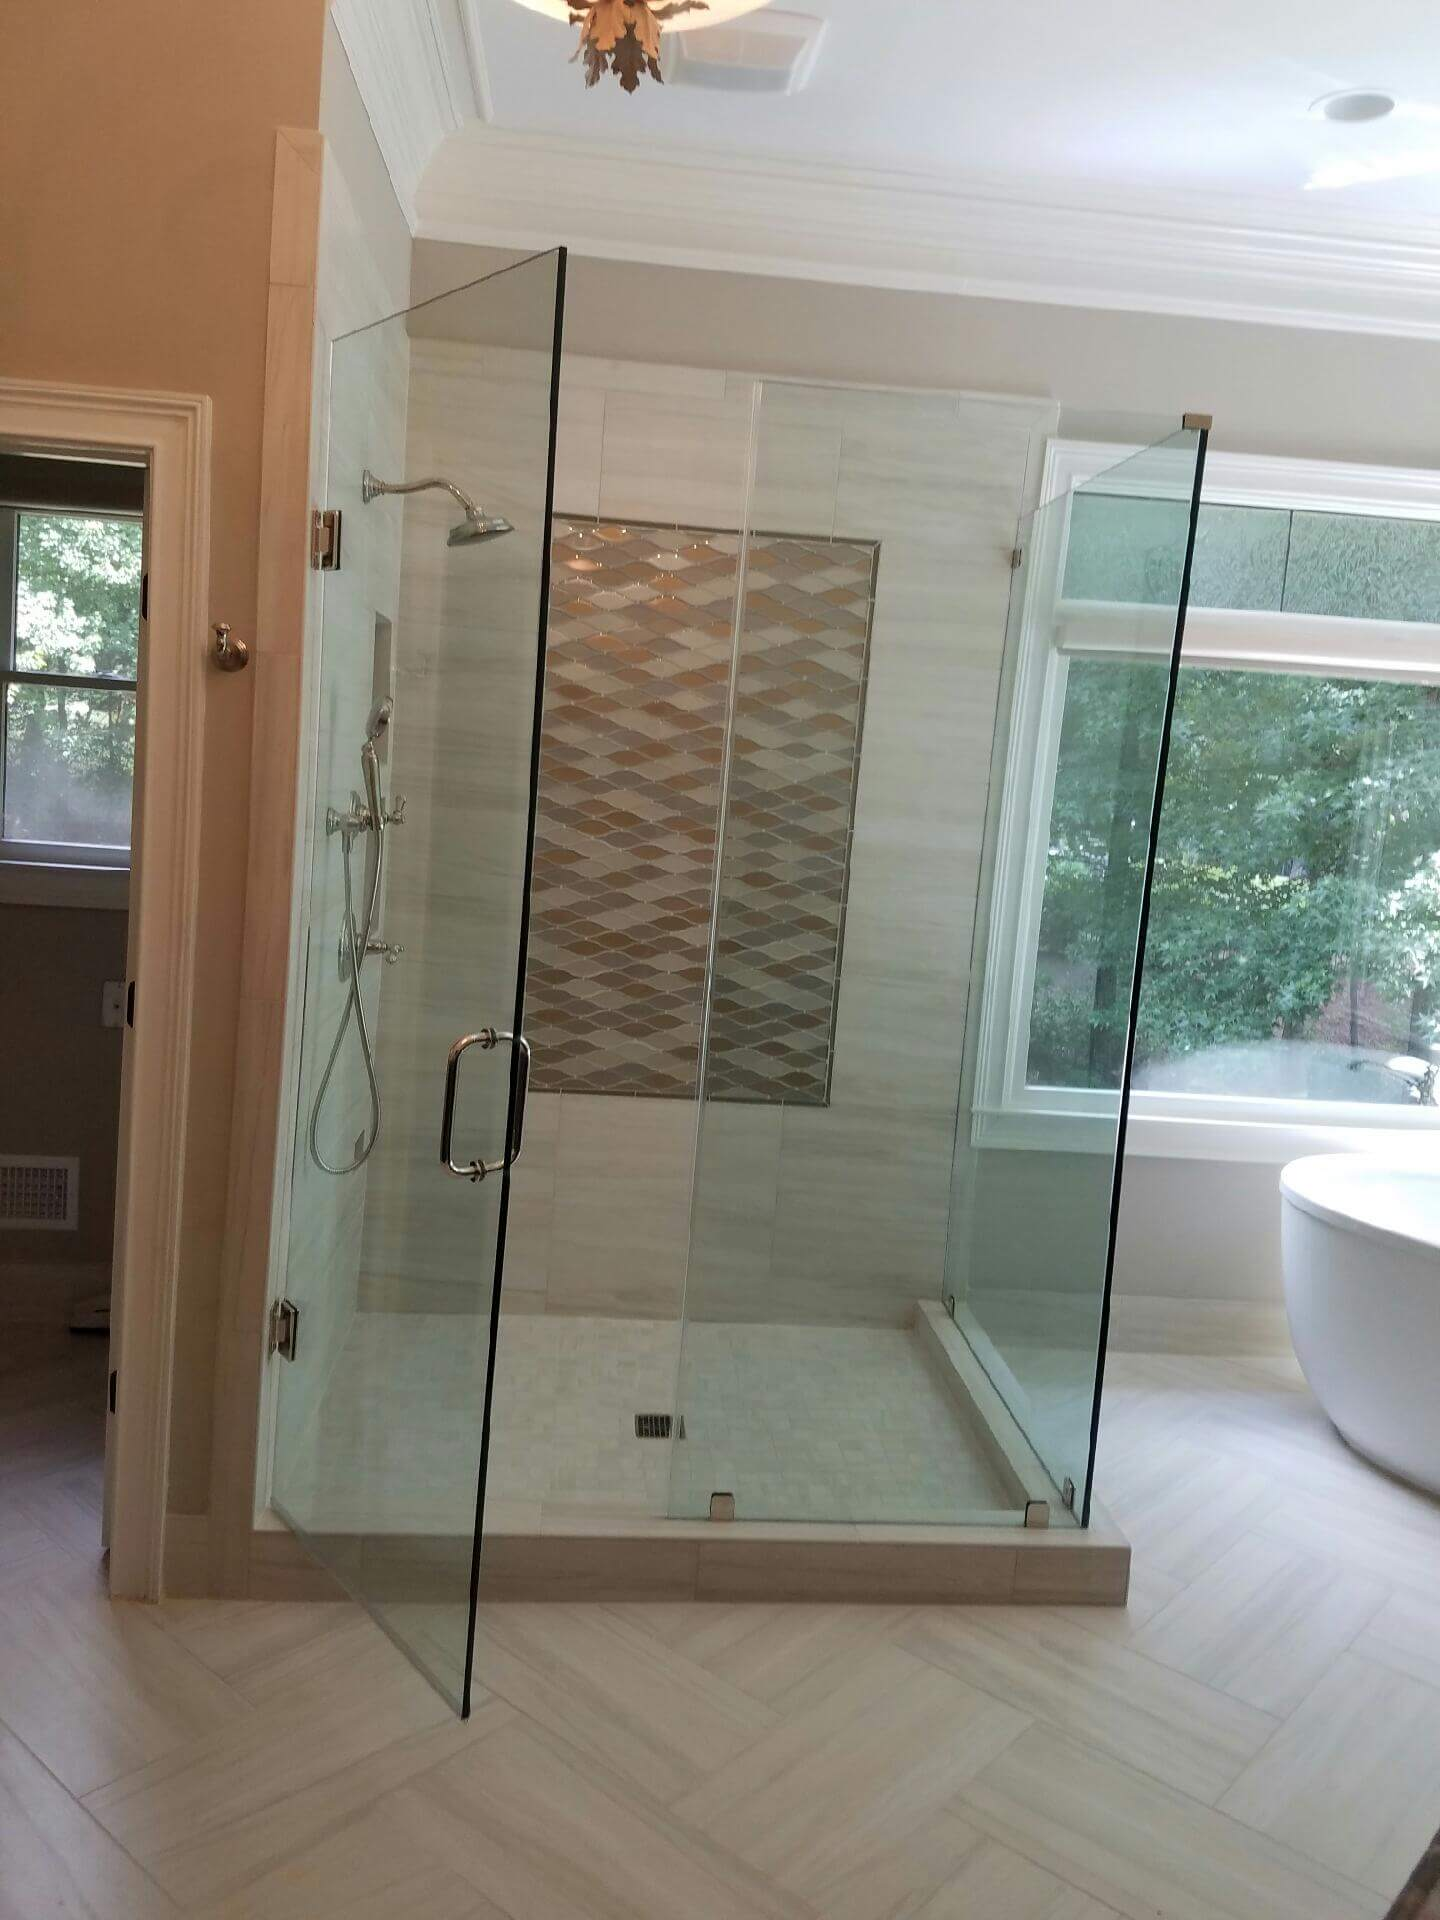 Chc Glass Mirror Shower Enclosures Atlanta Ga